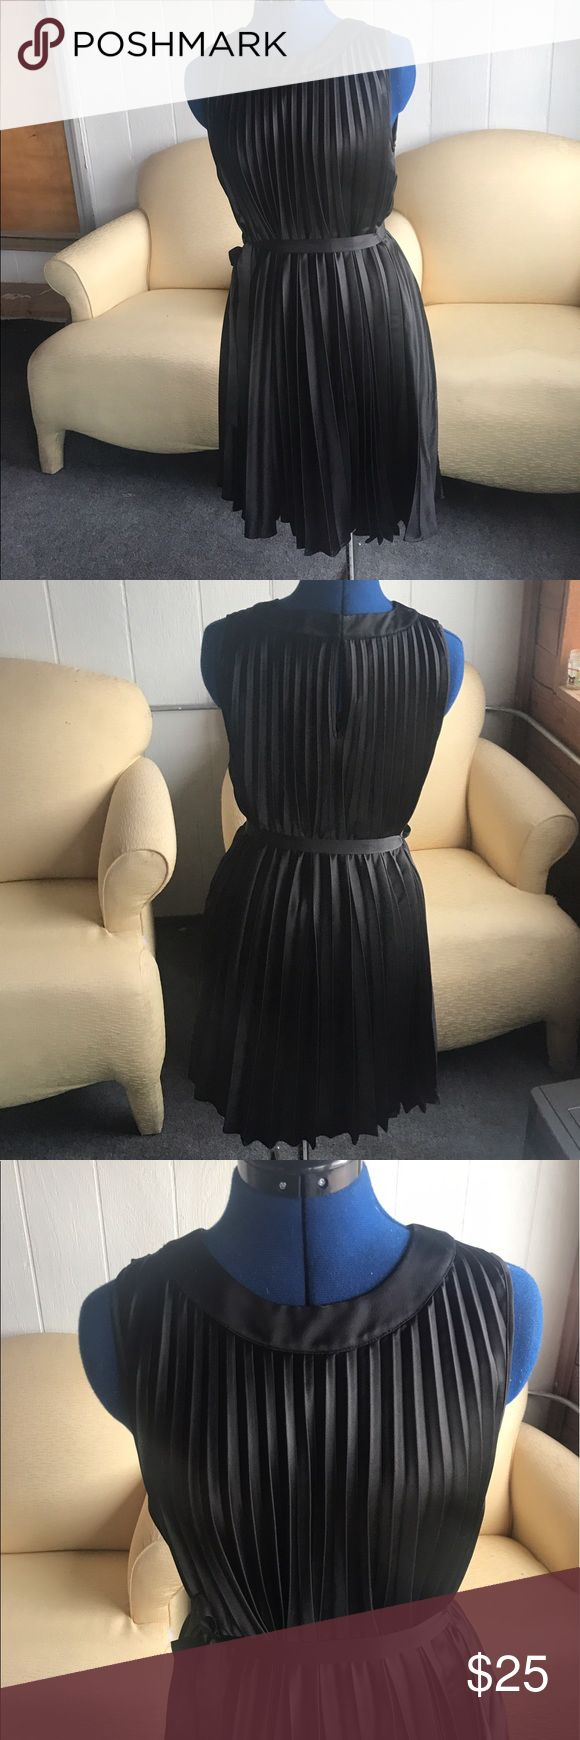 Black Satin pleated cocktail Dress GORG 😍😍😍😍 like new amazing, show stopper dress. Size 8 but would fit smaller or larger sizes because it ties at The waist. Length is to the knee on a 5'5 height. Dresses Midi